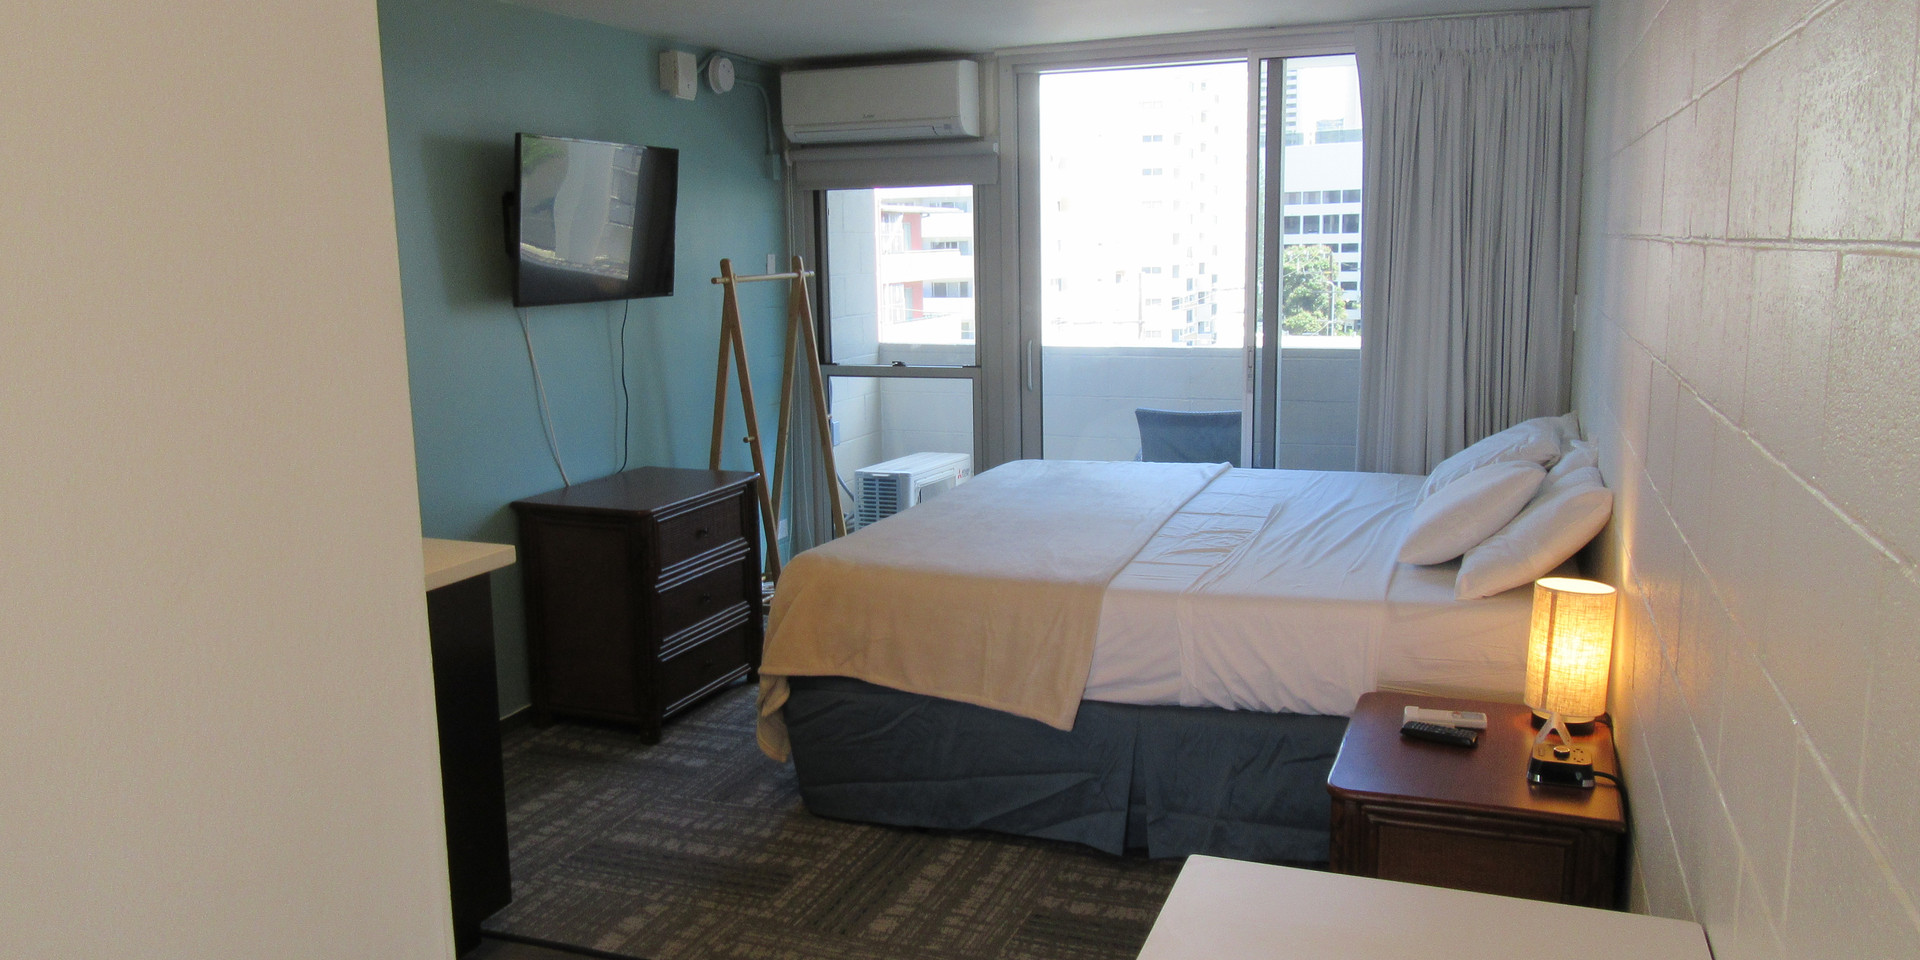 1 king bed room (1)